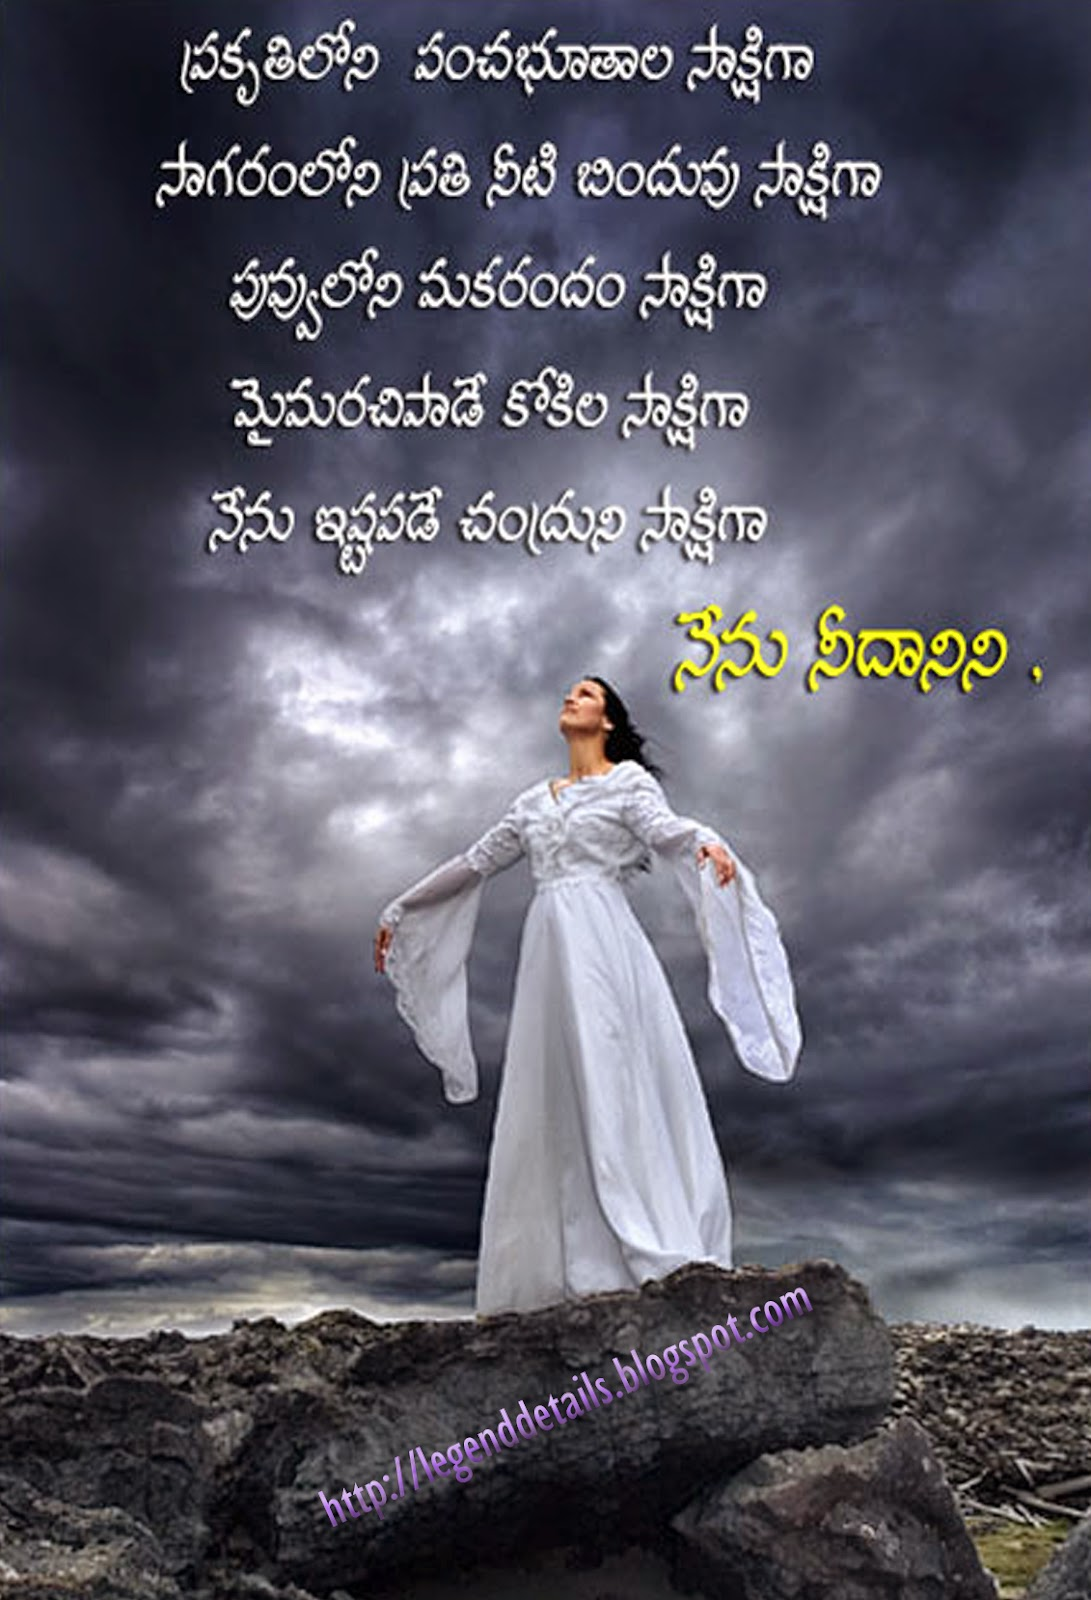 Best Love Quotes For Girlfriend In Telugu : Love proposal sms in telugu Love proposal quotes in telugu Love ...